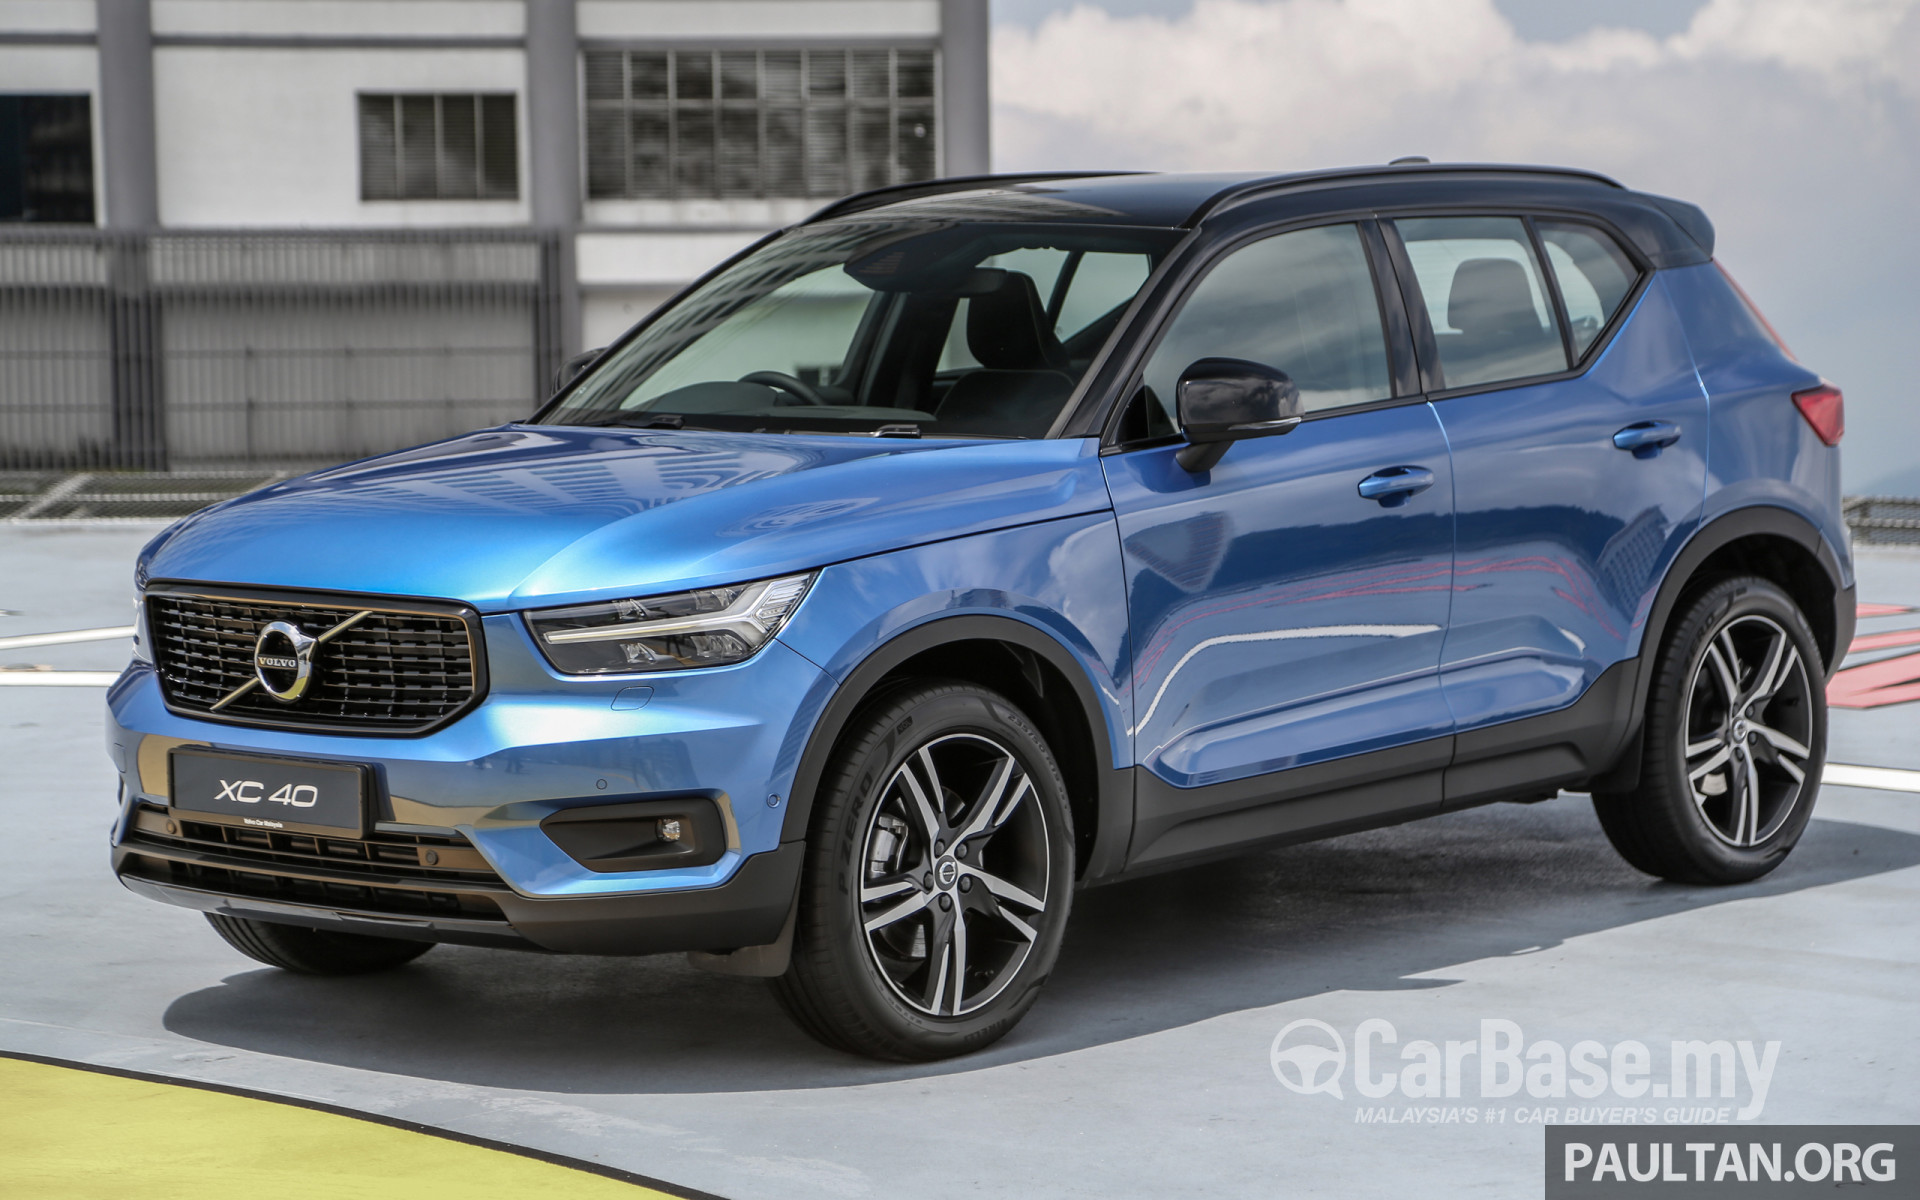 Volvo Xc40 Mk1 2018 Exterior Image 51602 In Malaysia Reviews